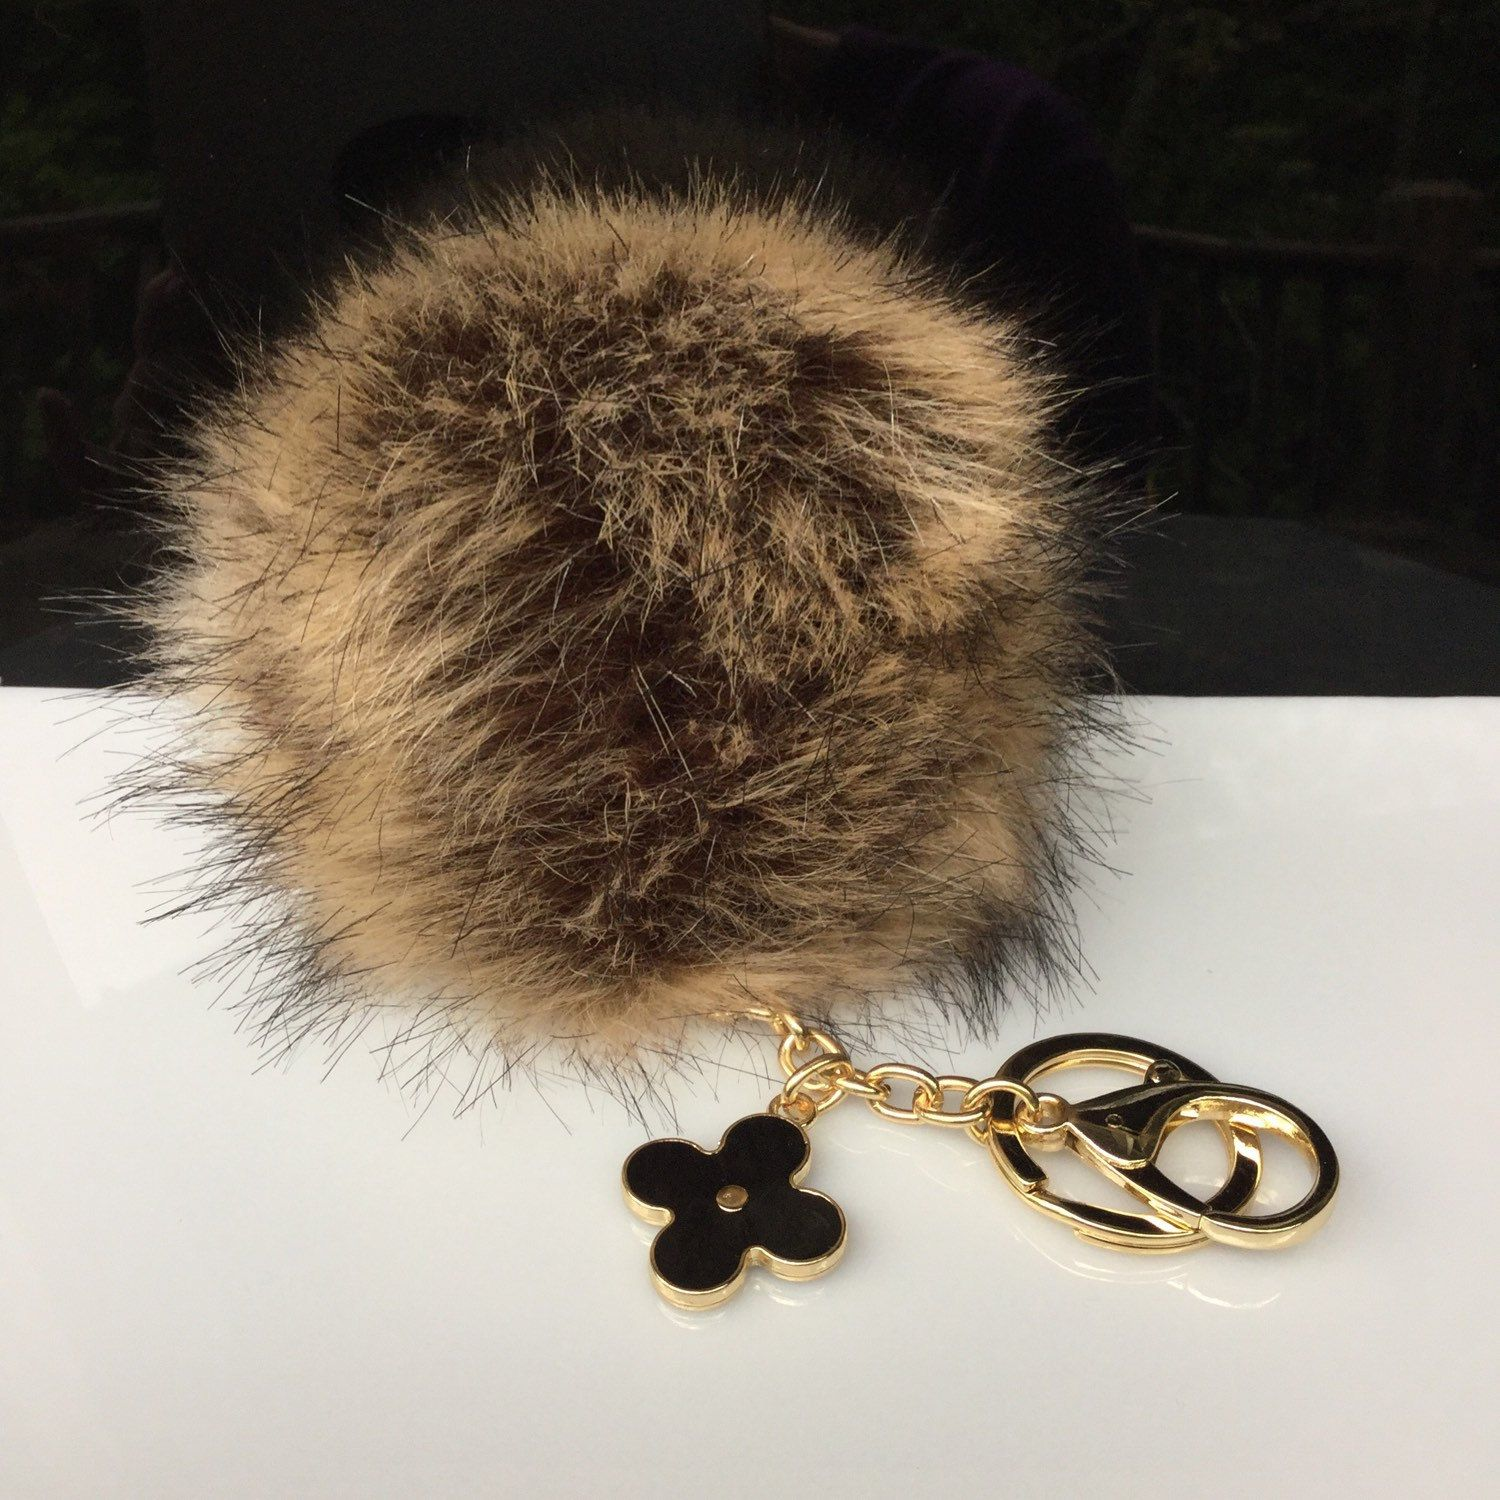 304a5271ccd7 Faux Fox Fur Pom Pom bag Keyring Hot Couture Novelty keychain pom pom fake  fur ball in imitated natural look by YogaStudio55 on Etsy